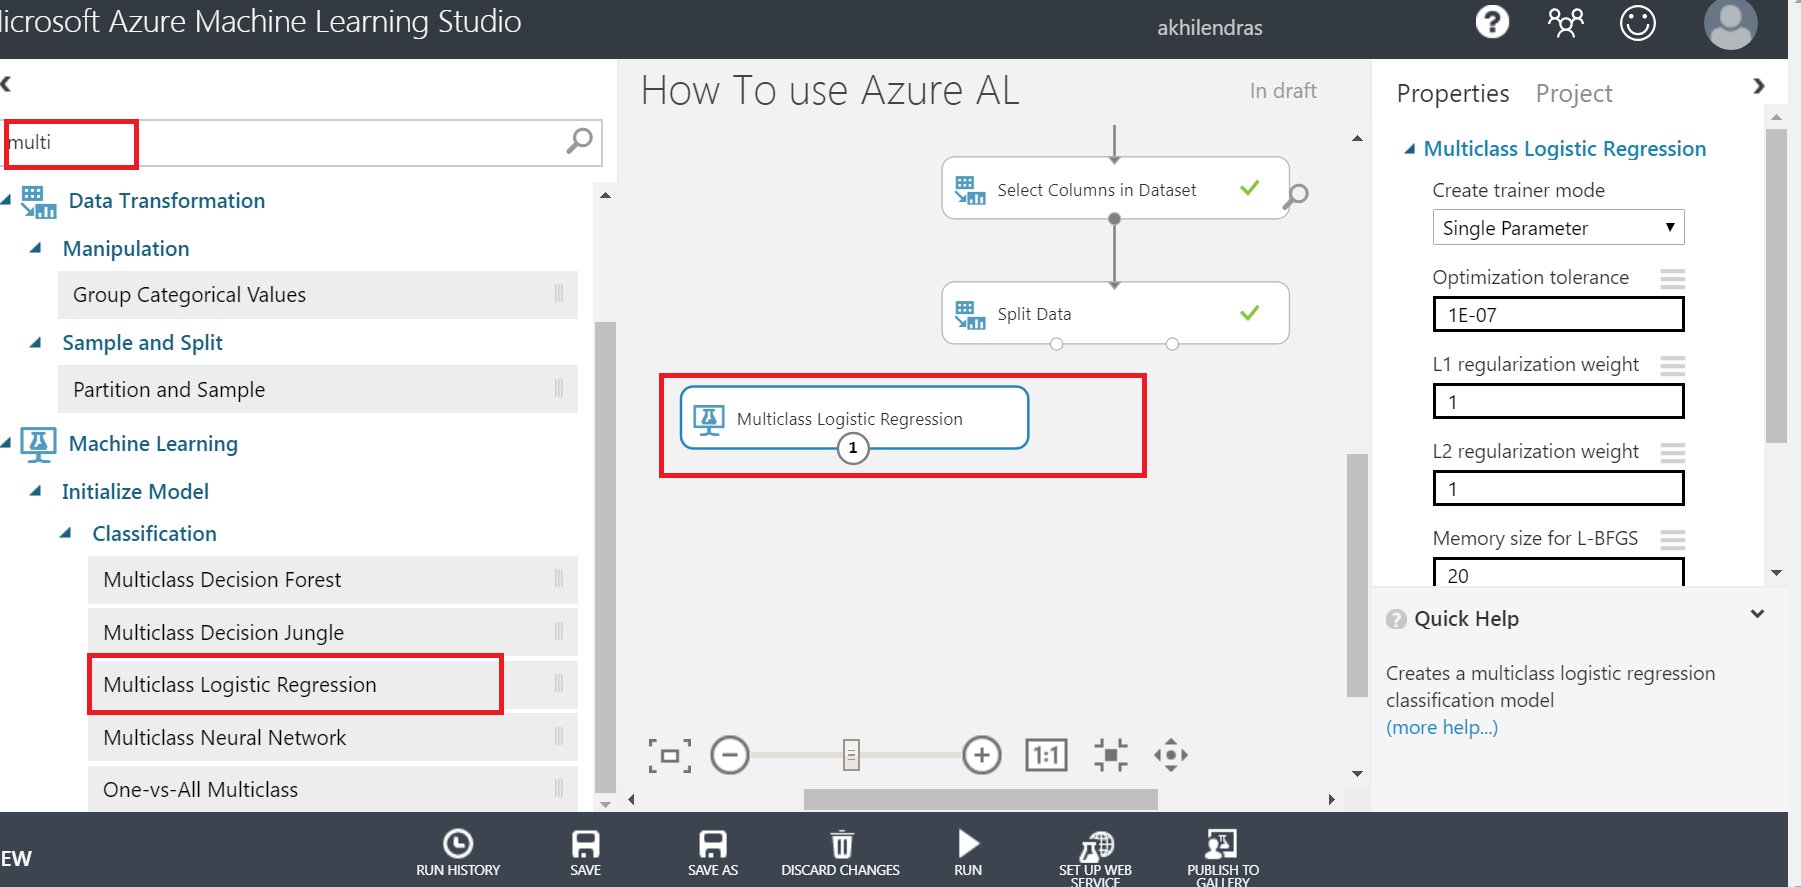 multiclass logistic regression in azure ml studiio